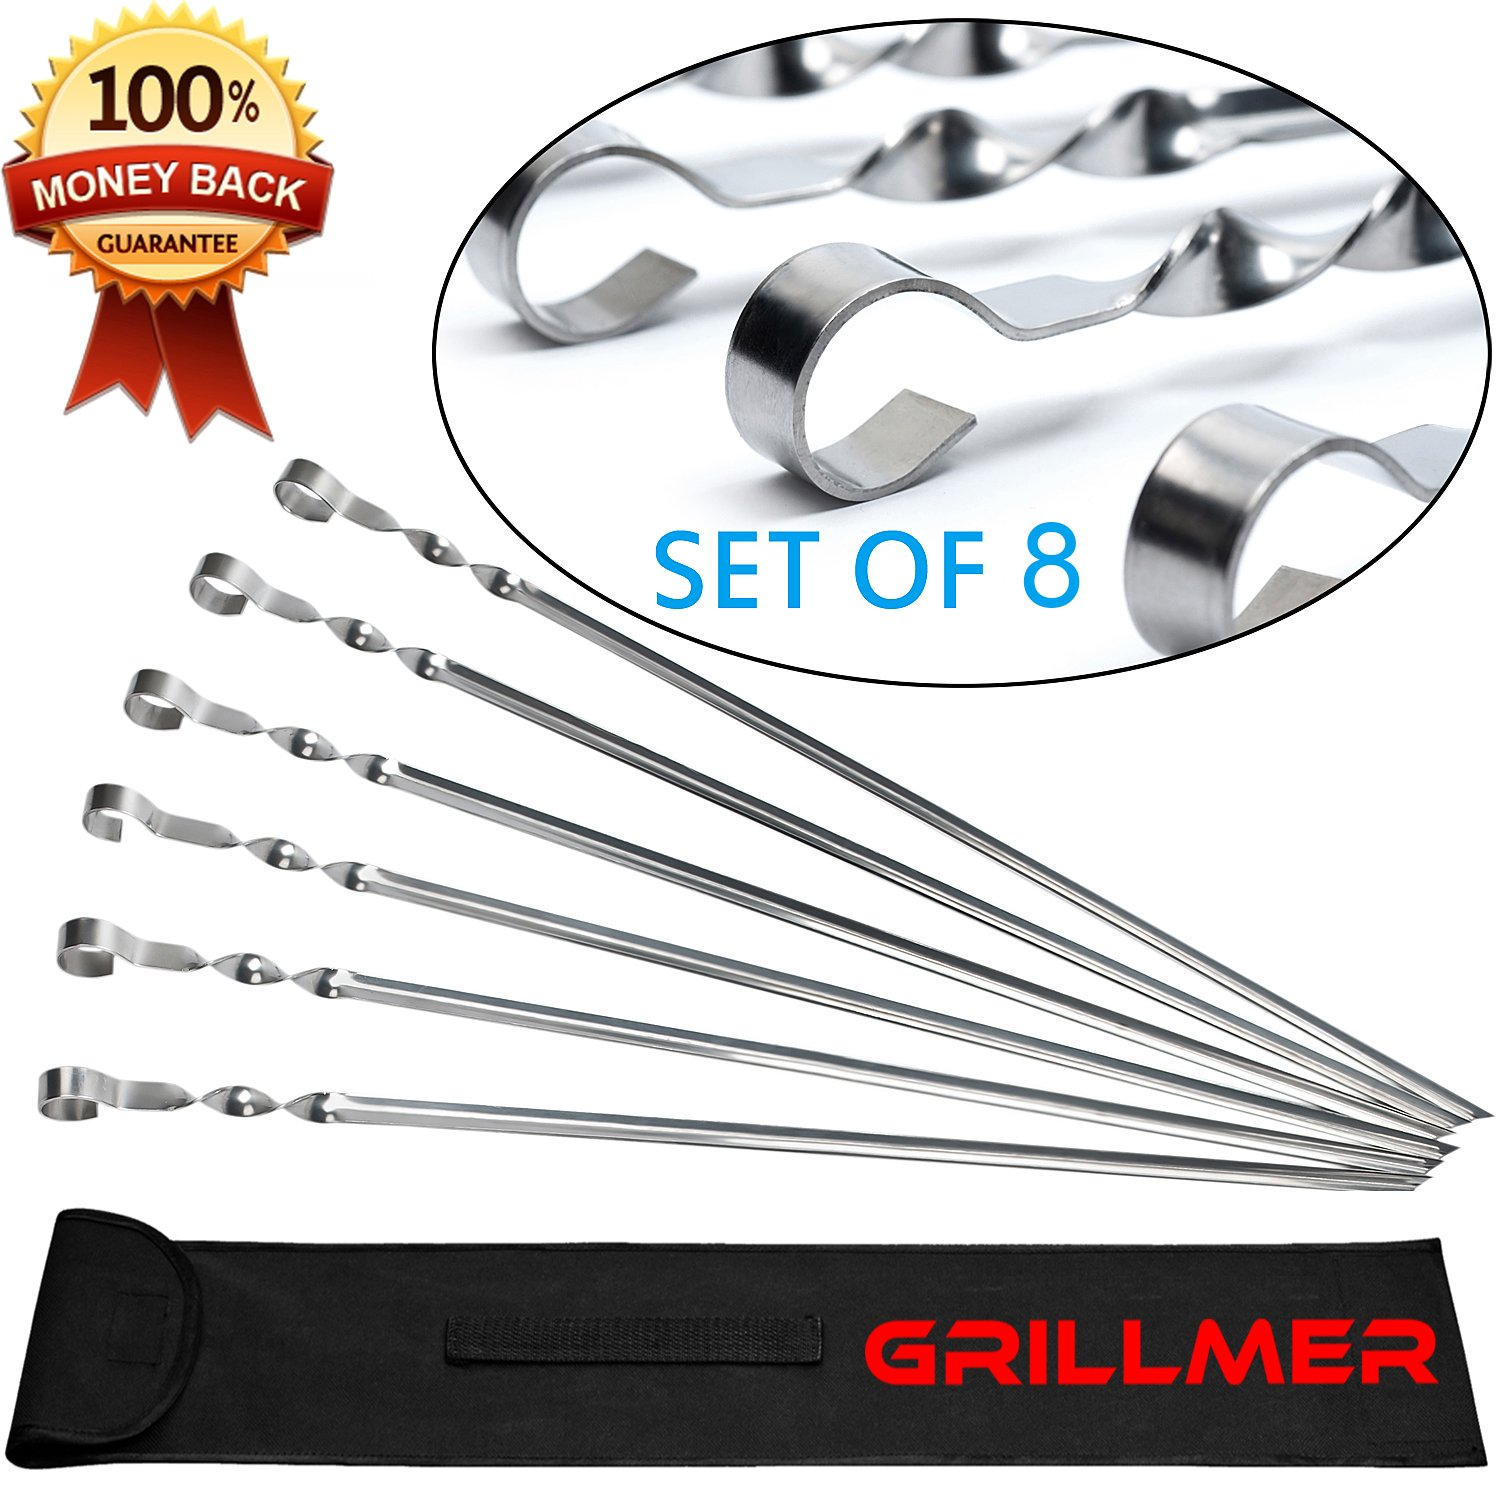 Skewers 22'' Large【Upgraded】Shish Kabob Skewers Stainless Steel Long &V-Shape Reusable Kabob Sticks Barbecue BBQ Skewers For Grilling Set of 8 Piece Heavy Duty Wide BBQ Sticks Ideal for Shish Kebab by GRILLMER